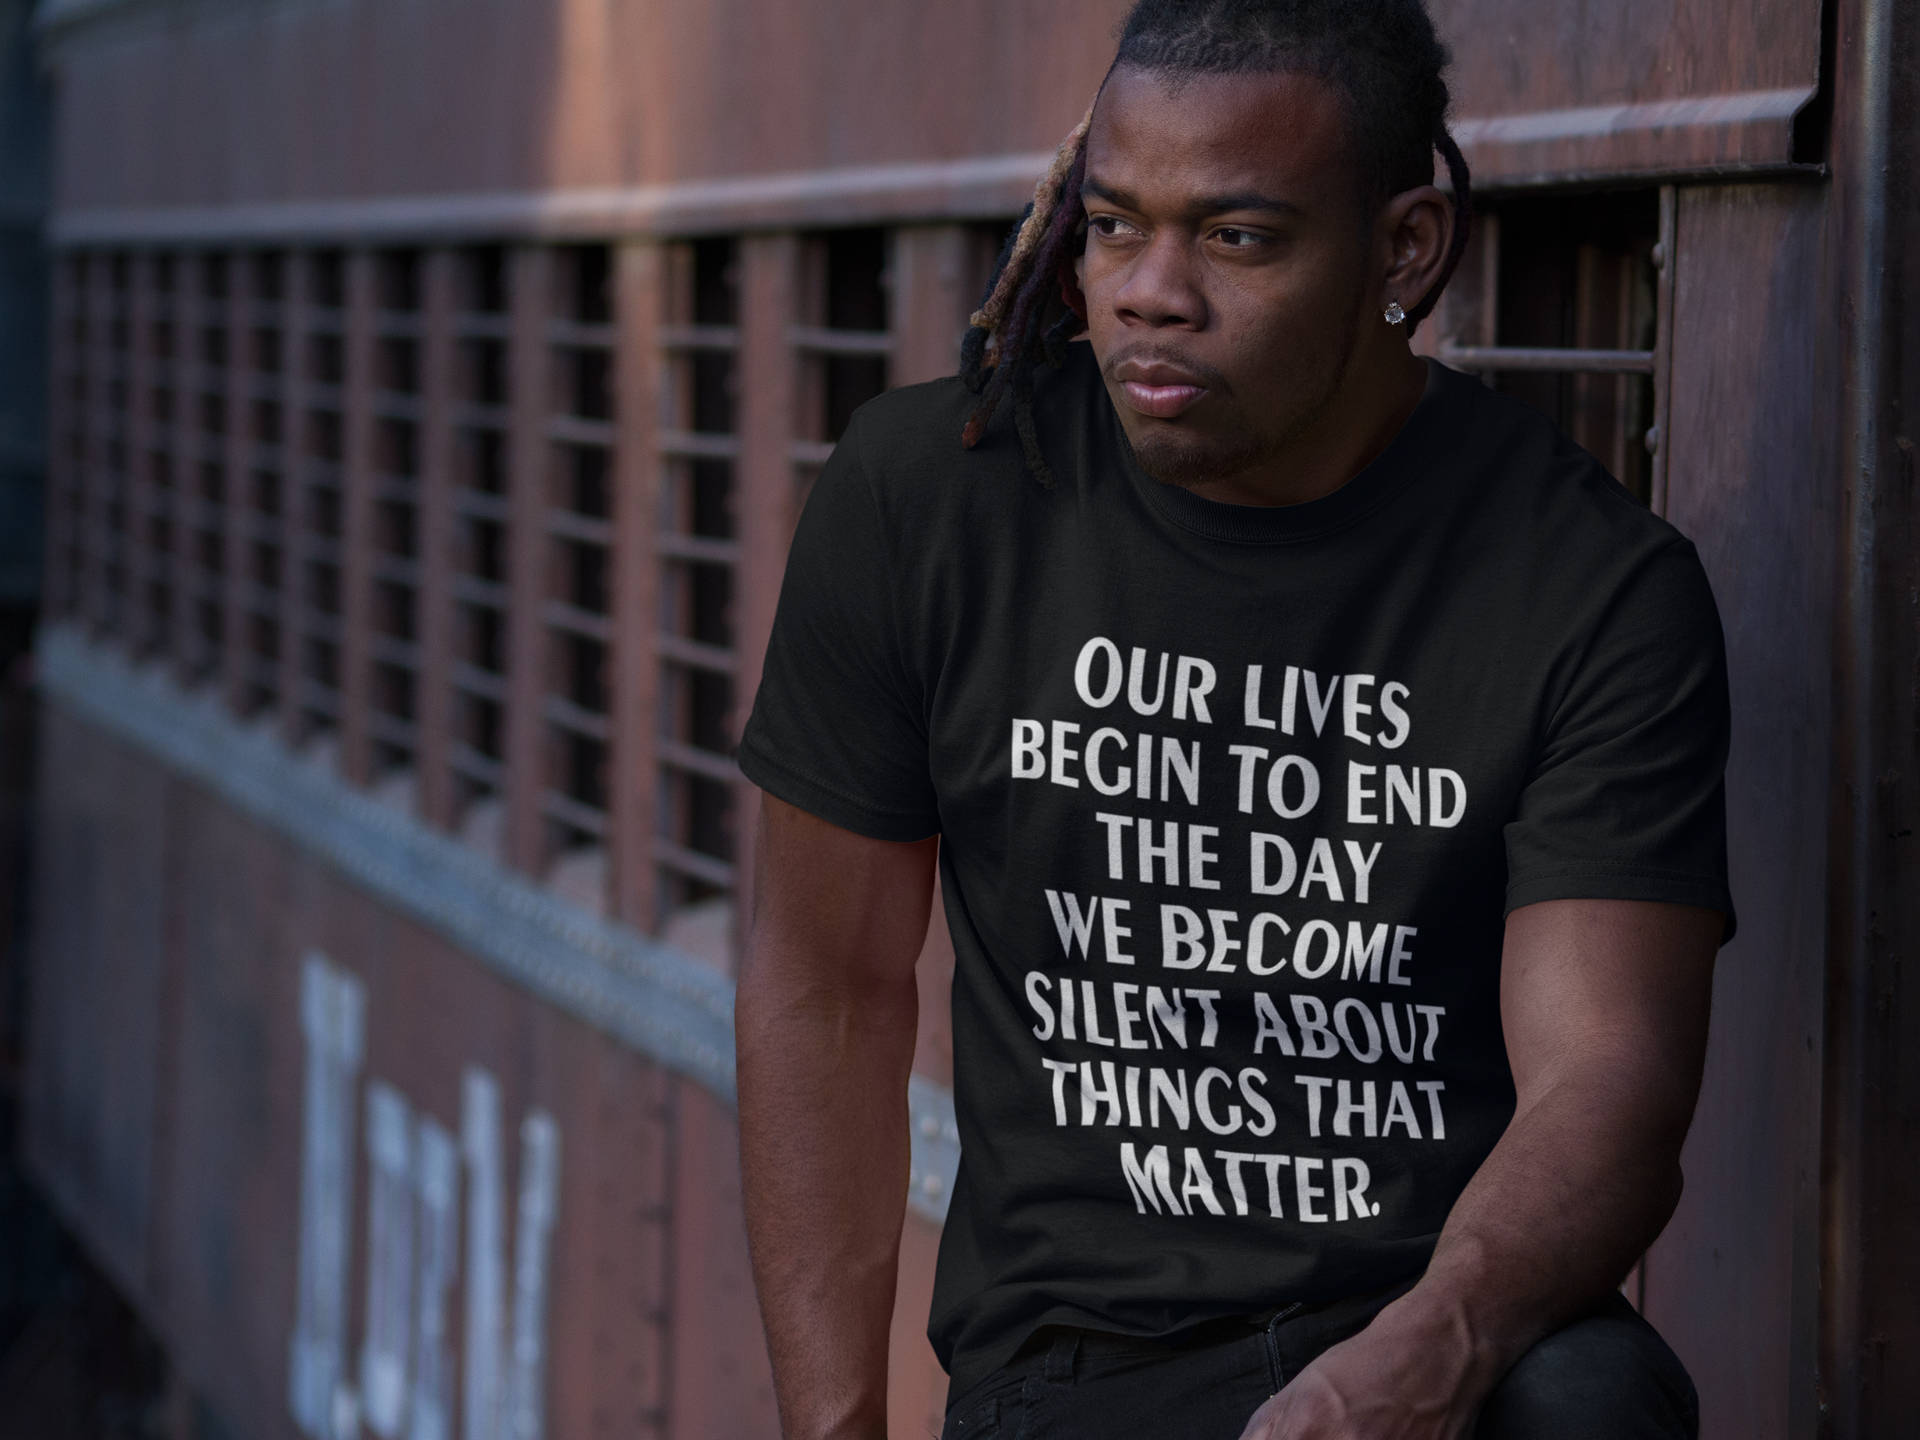 Image of Blm T-shirt, Martin Luther King Shirt, Our Lives Begin to End the Day we Become Silent , Black Lives Matter T shirt, Civil Rights Movement